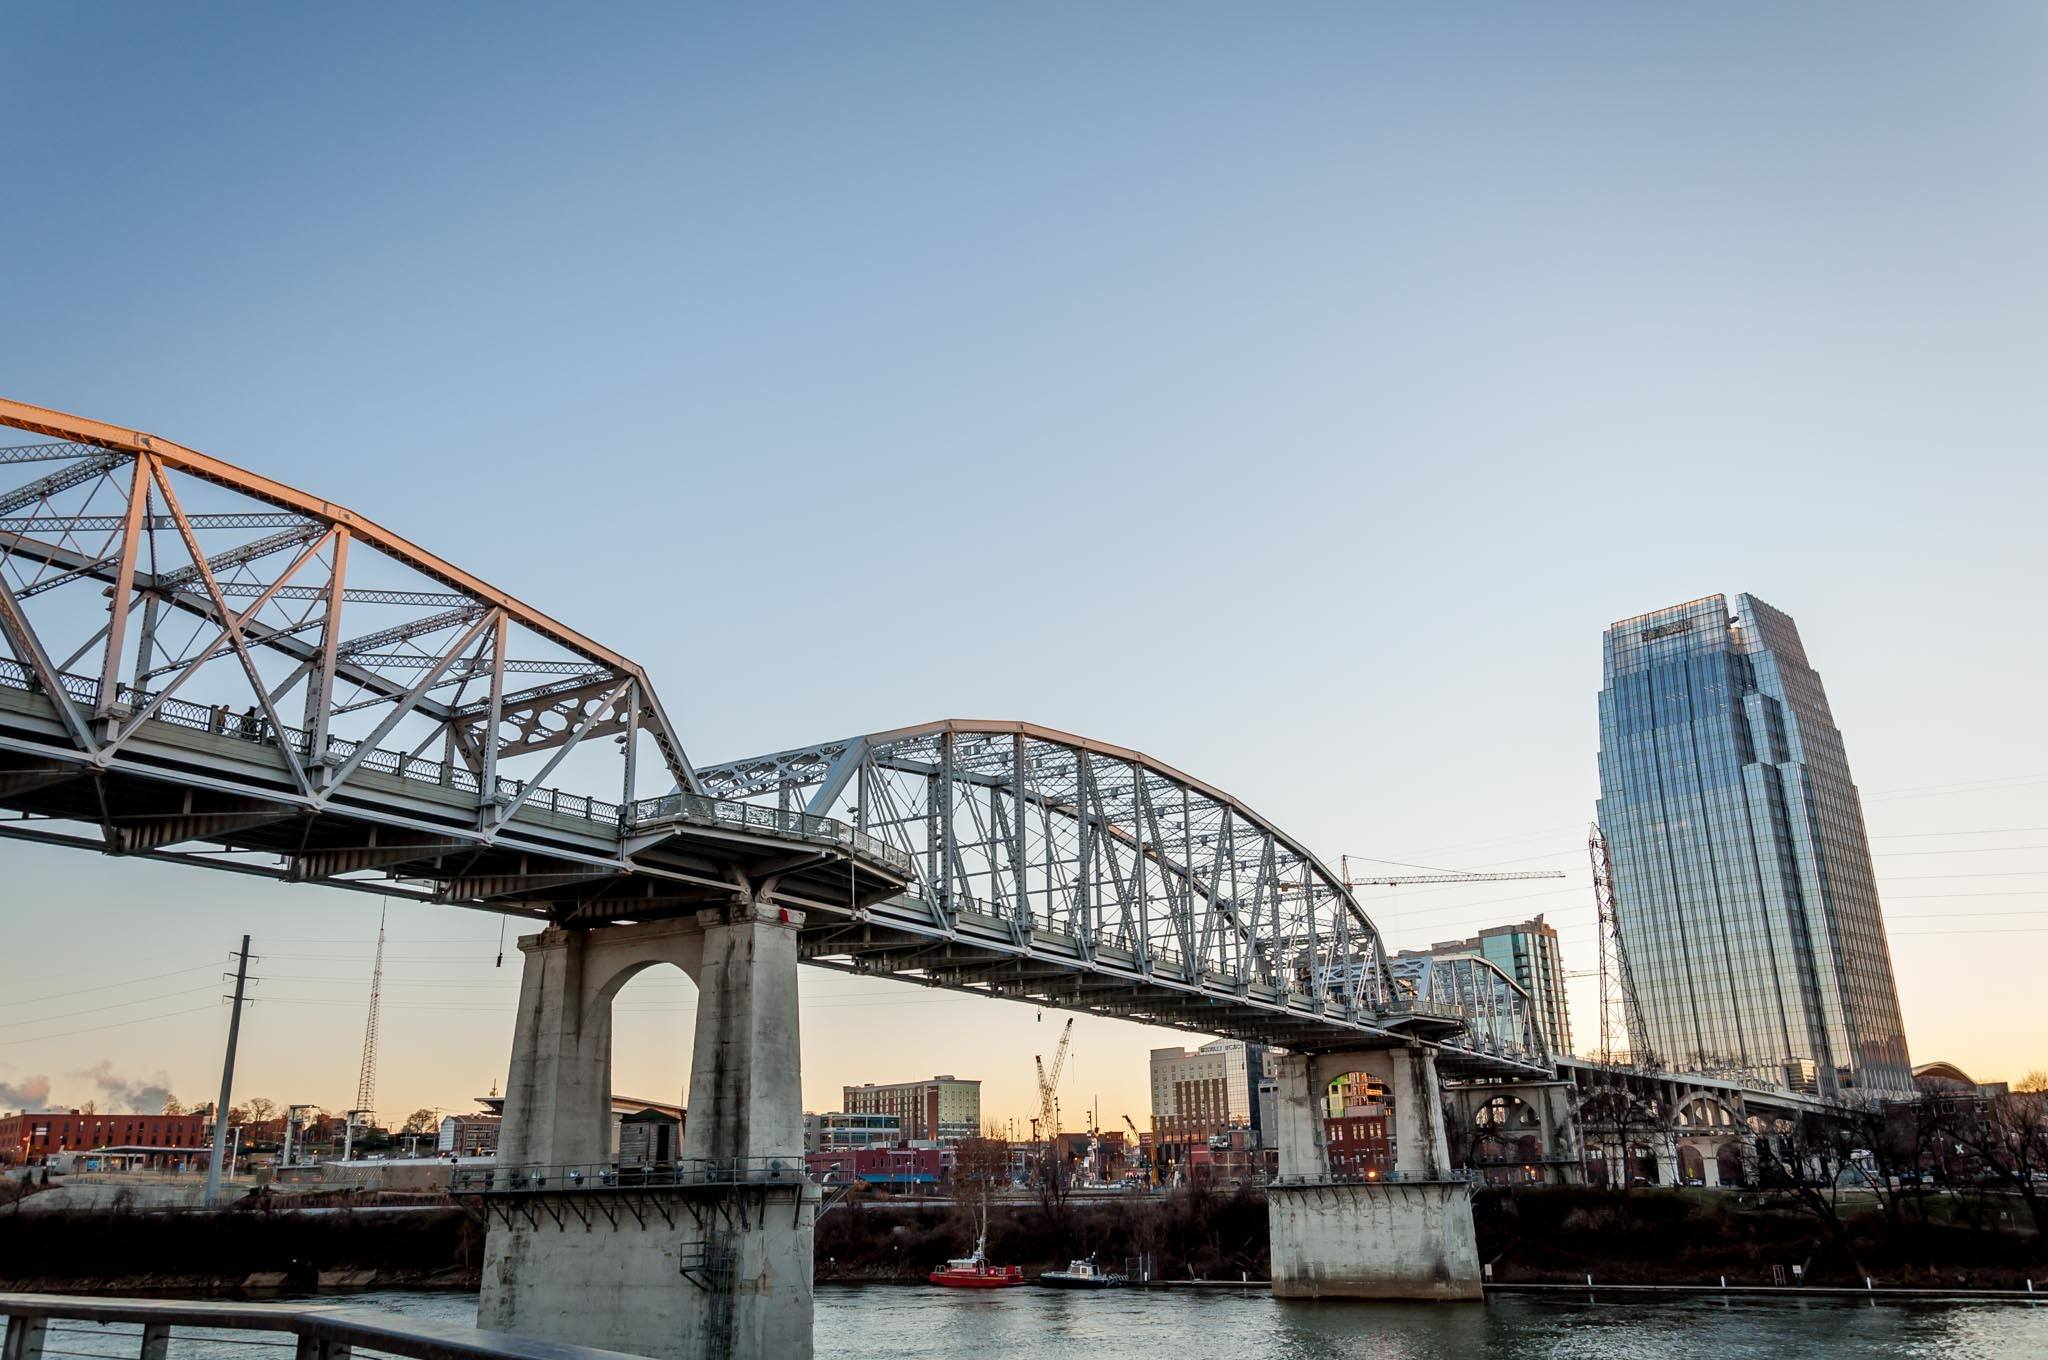 The John Seigenthaler Pedestrian Bridge in Nashville provides great views of the Cumberland River and downtown Nashville, Tennessee